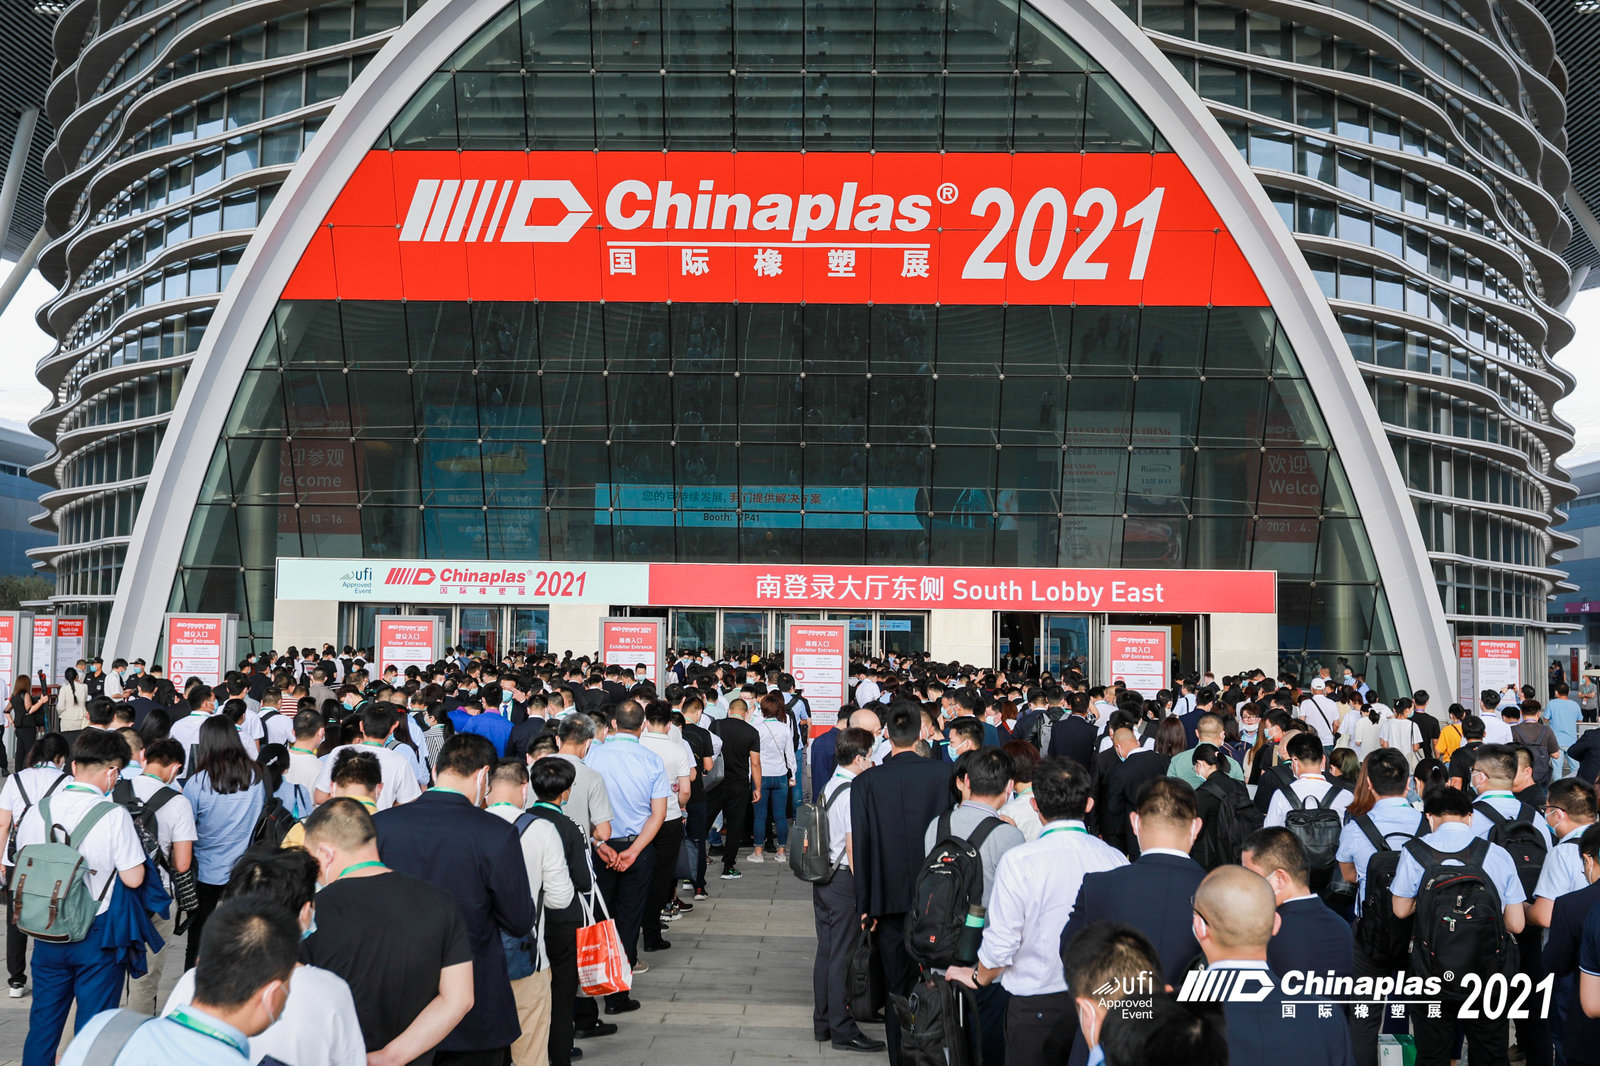 Ready? GO! Chinaplas 2021 Grand Opening at Shenzhen World Exhibition & Convention Center (Banan Dist